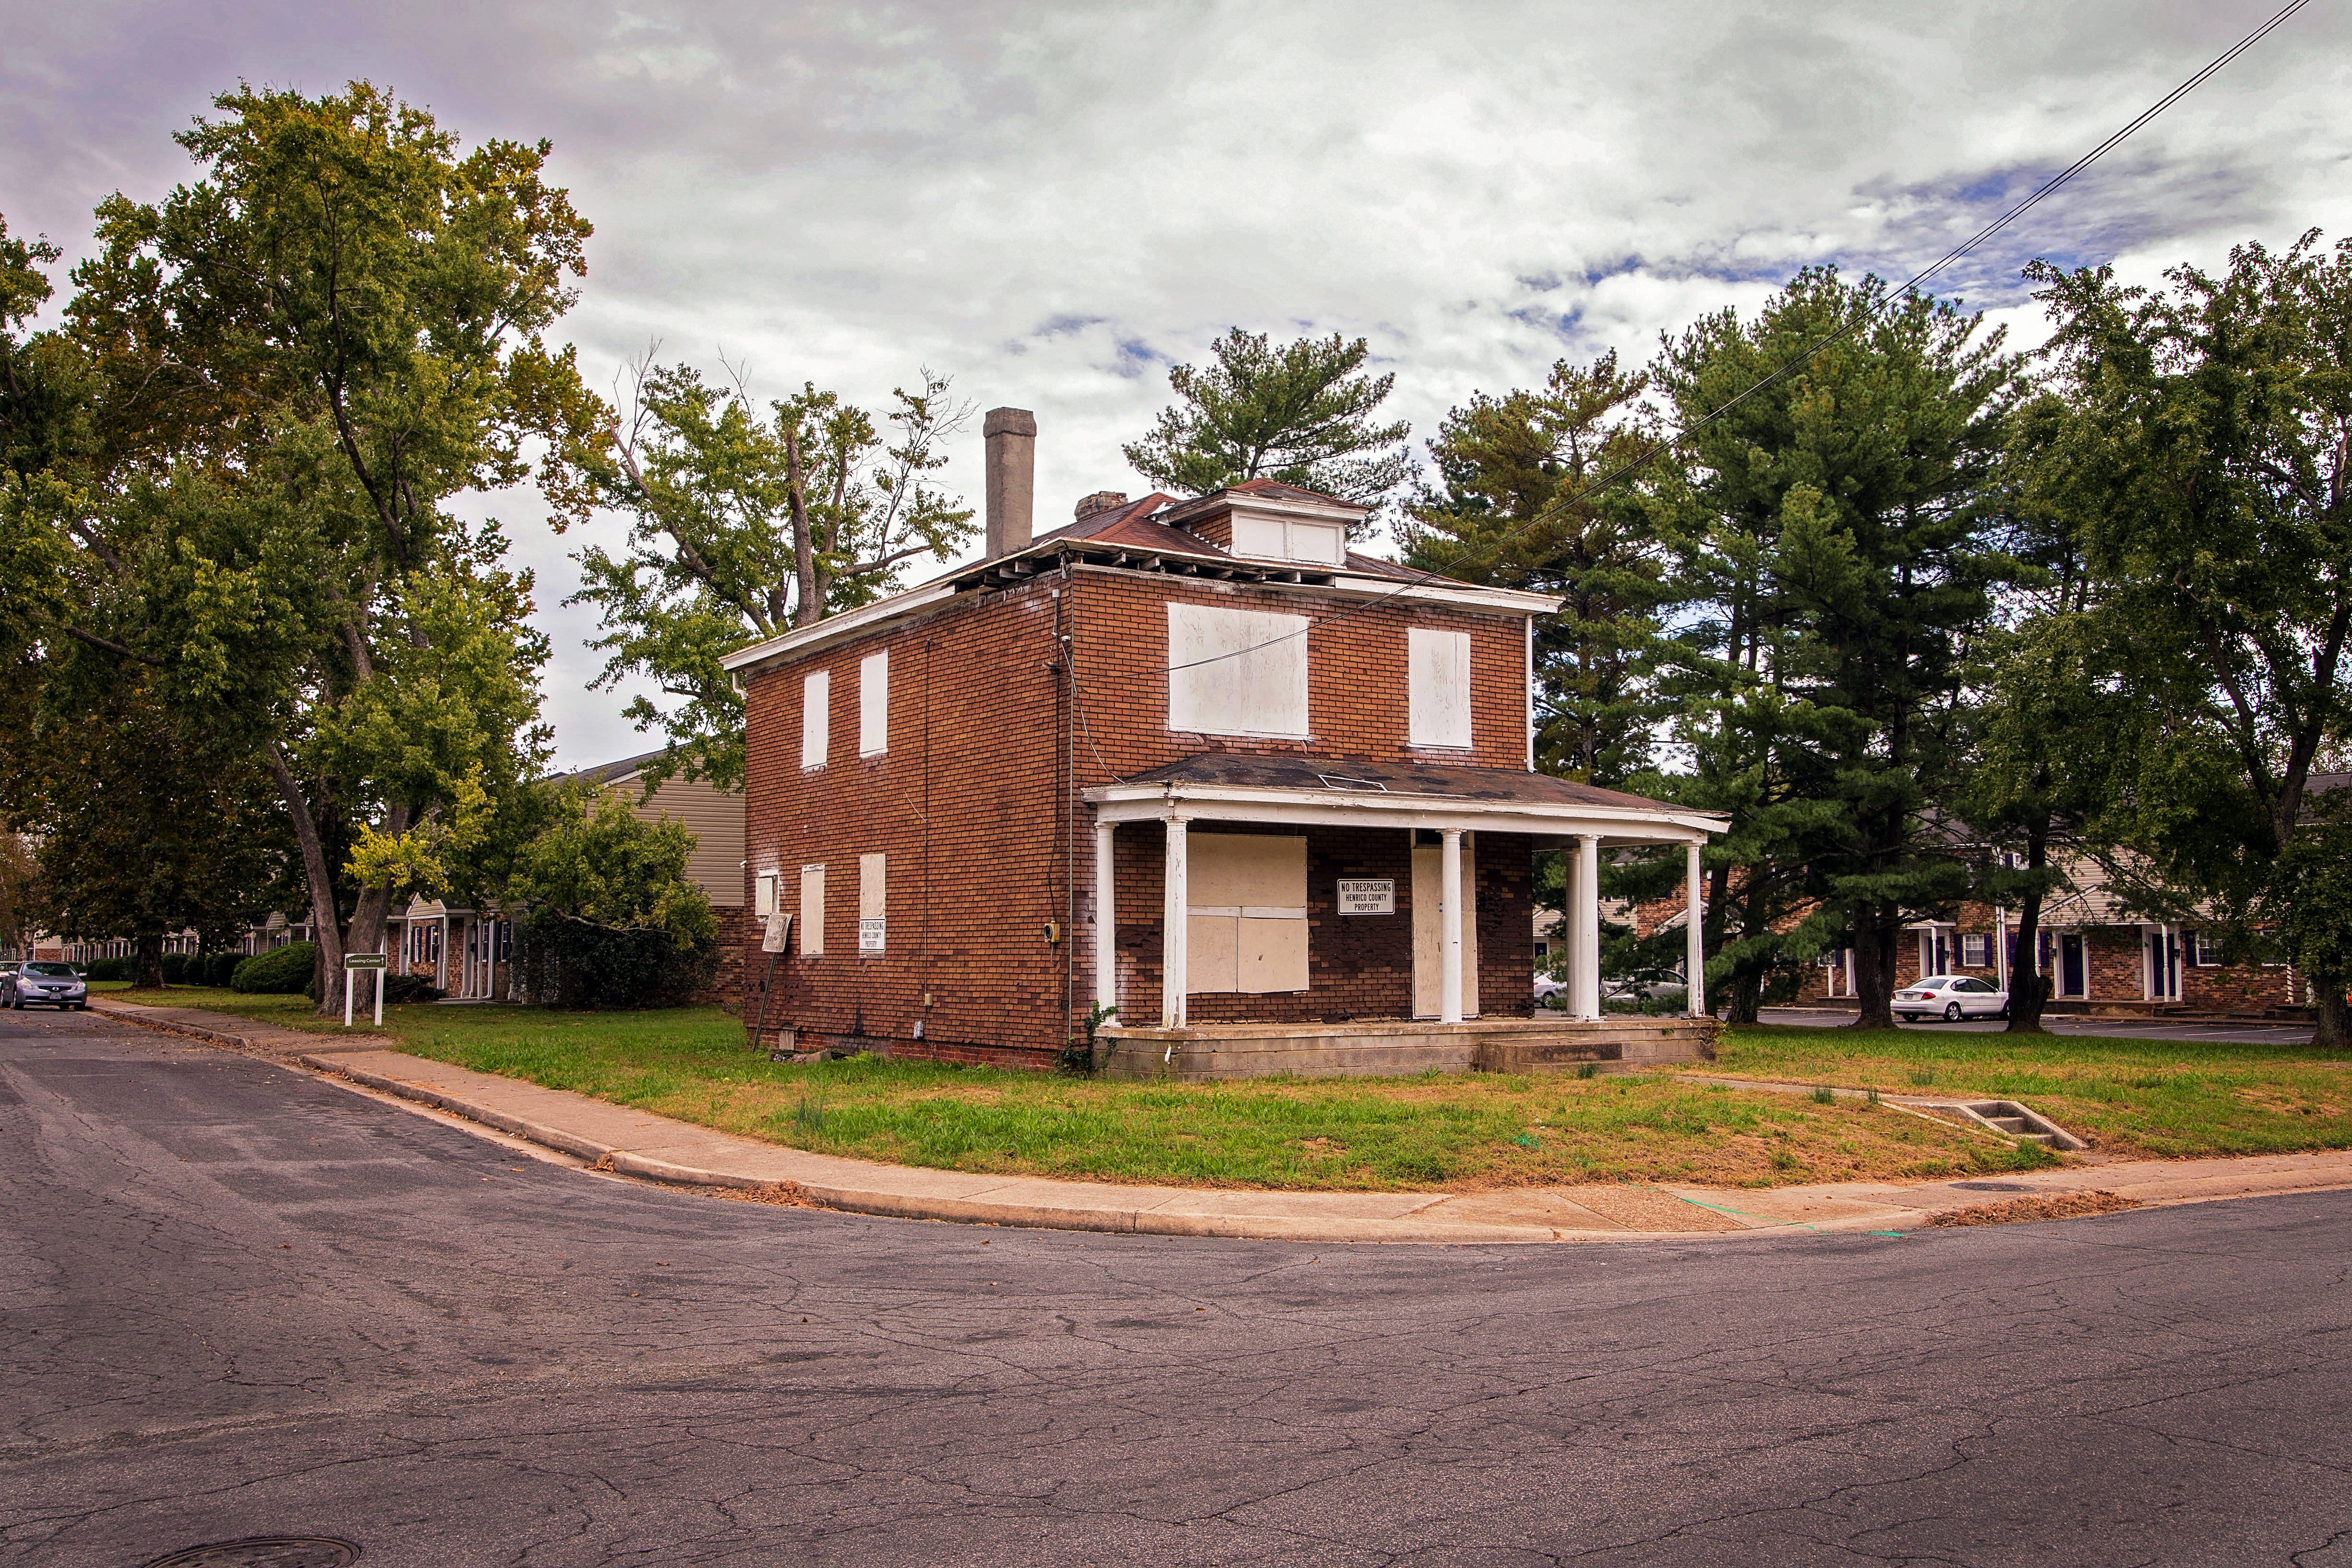 Brick house with boarded up windows